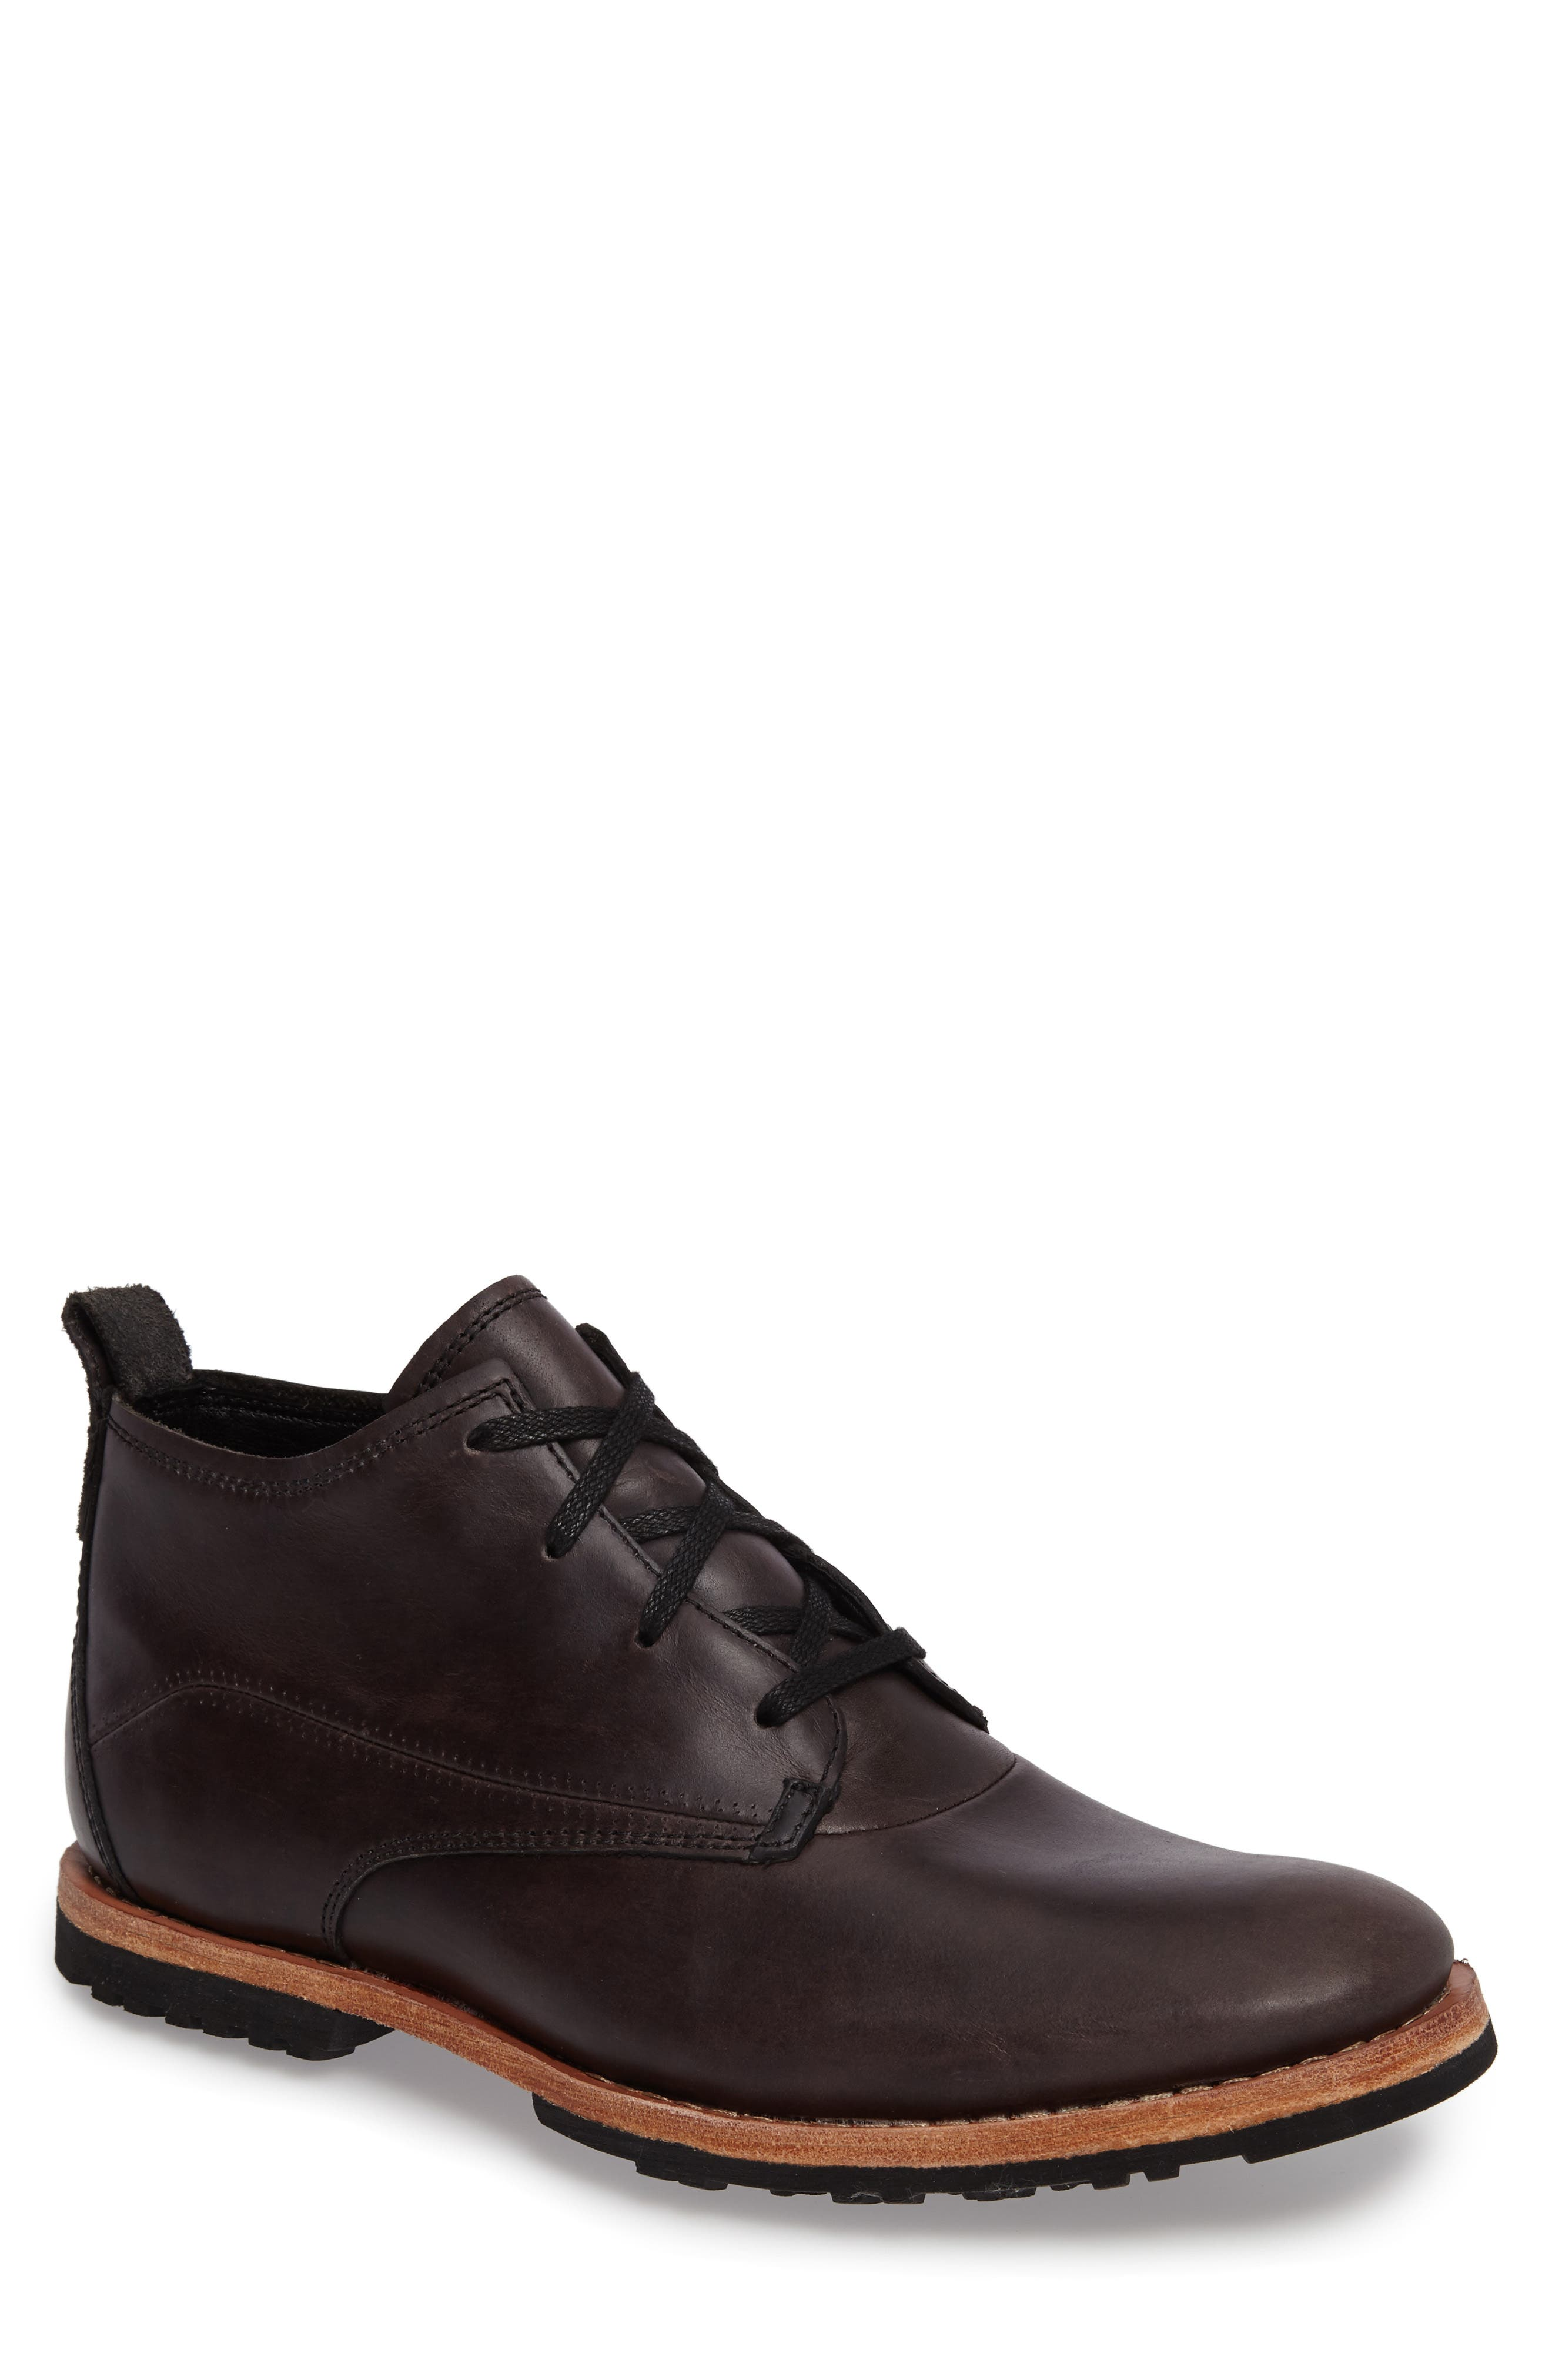 'Bardstown' Chukka Boot,                         Main,                         color, 002